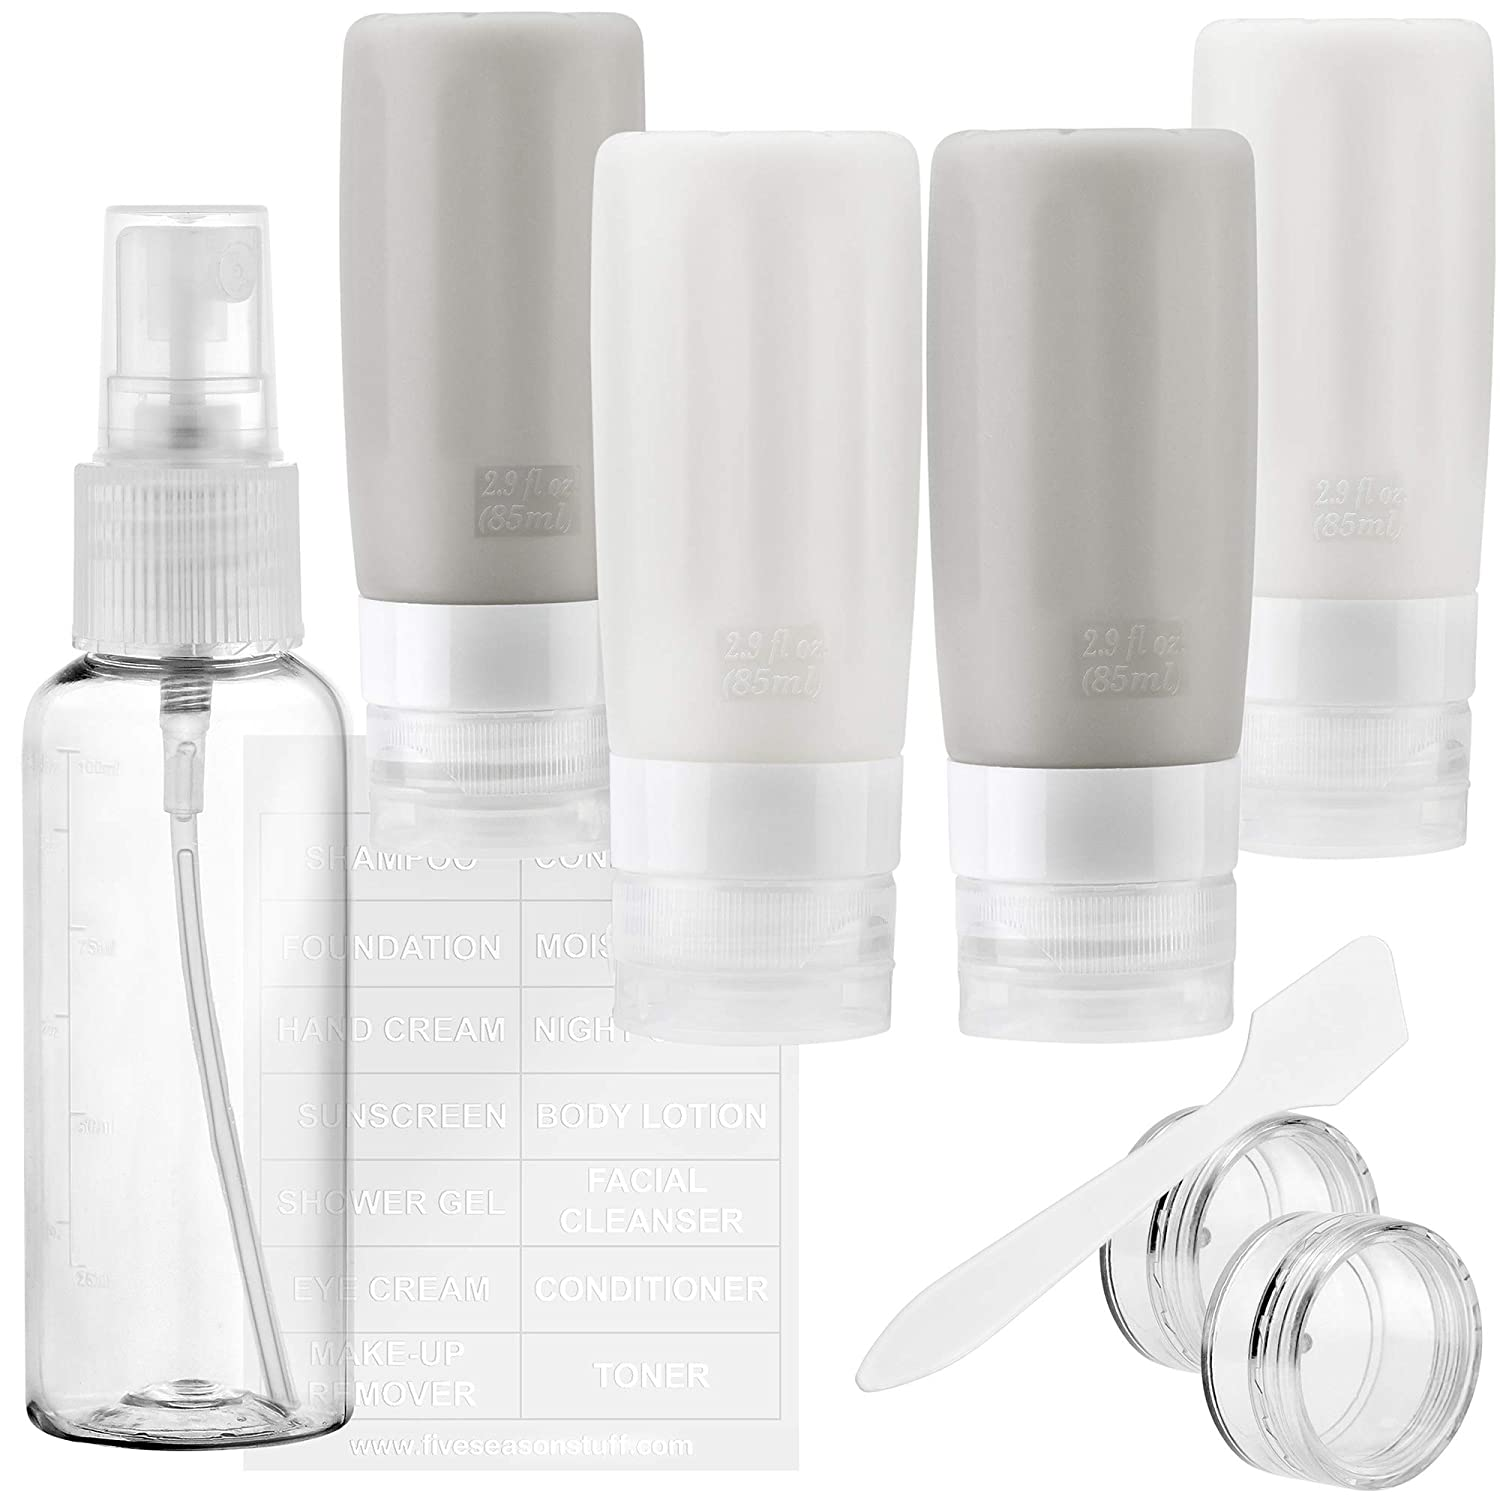 TSA Approved Silicone Leak Proof Travel Squeeze Bottles and Travel Spray Bottle with TSA Toiletry Bag (7 Pack) FiveSeasonStuff (Gray & White)